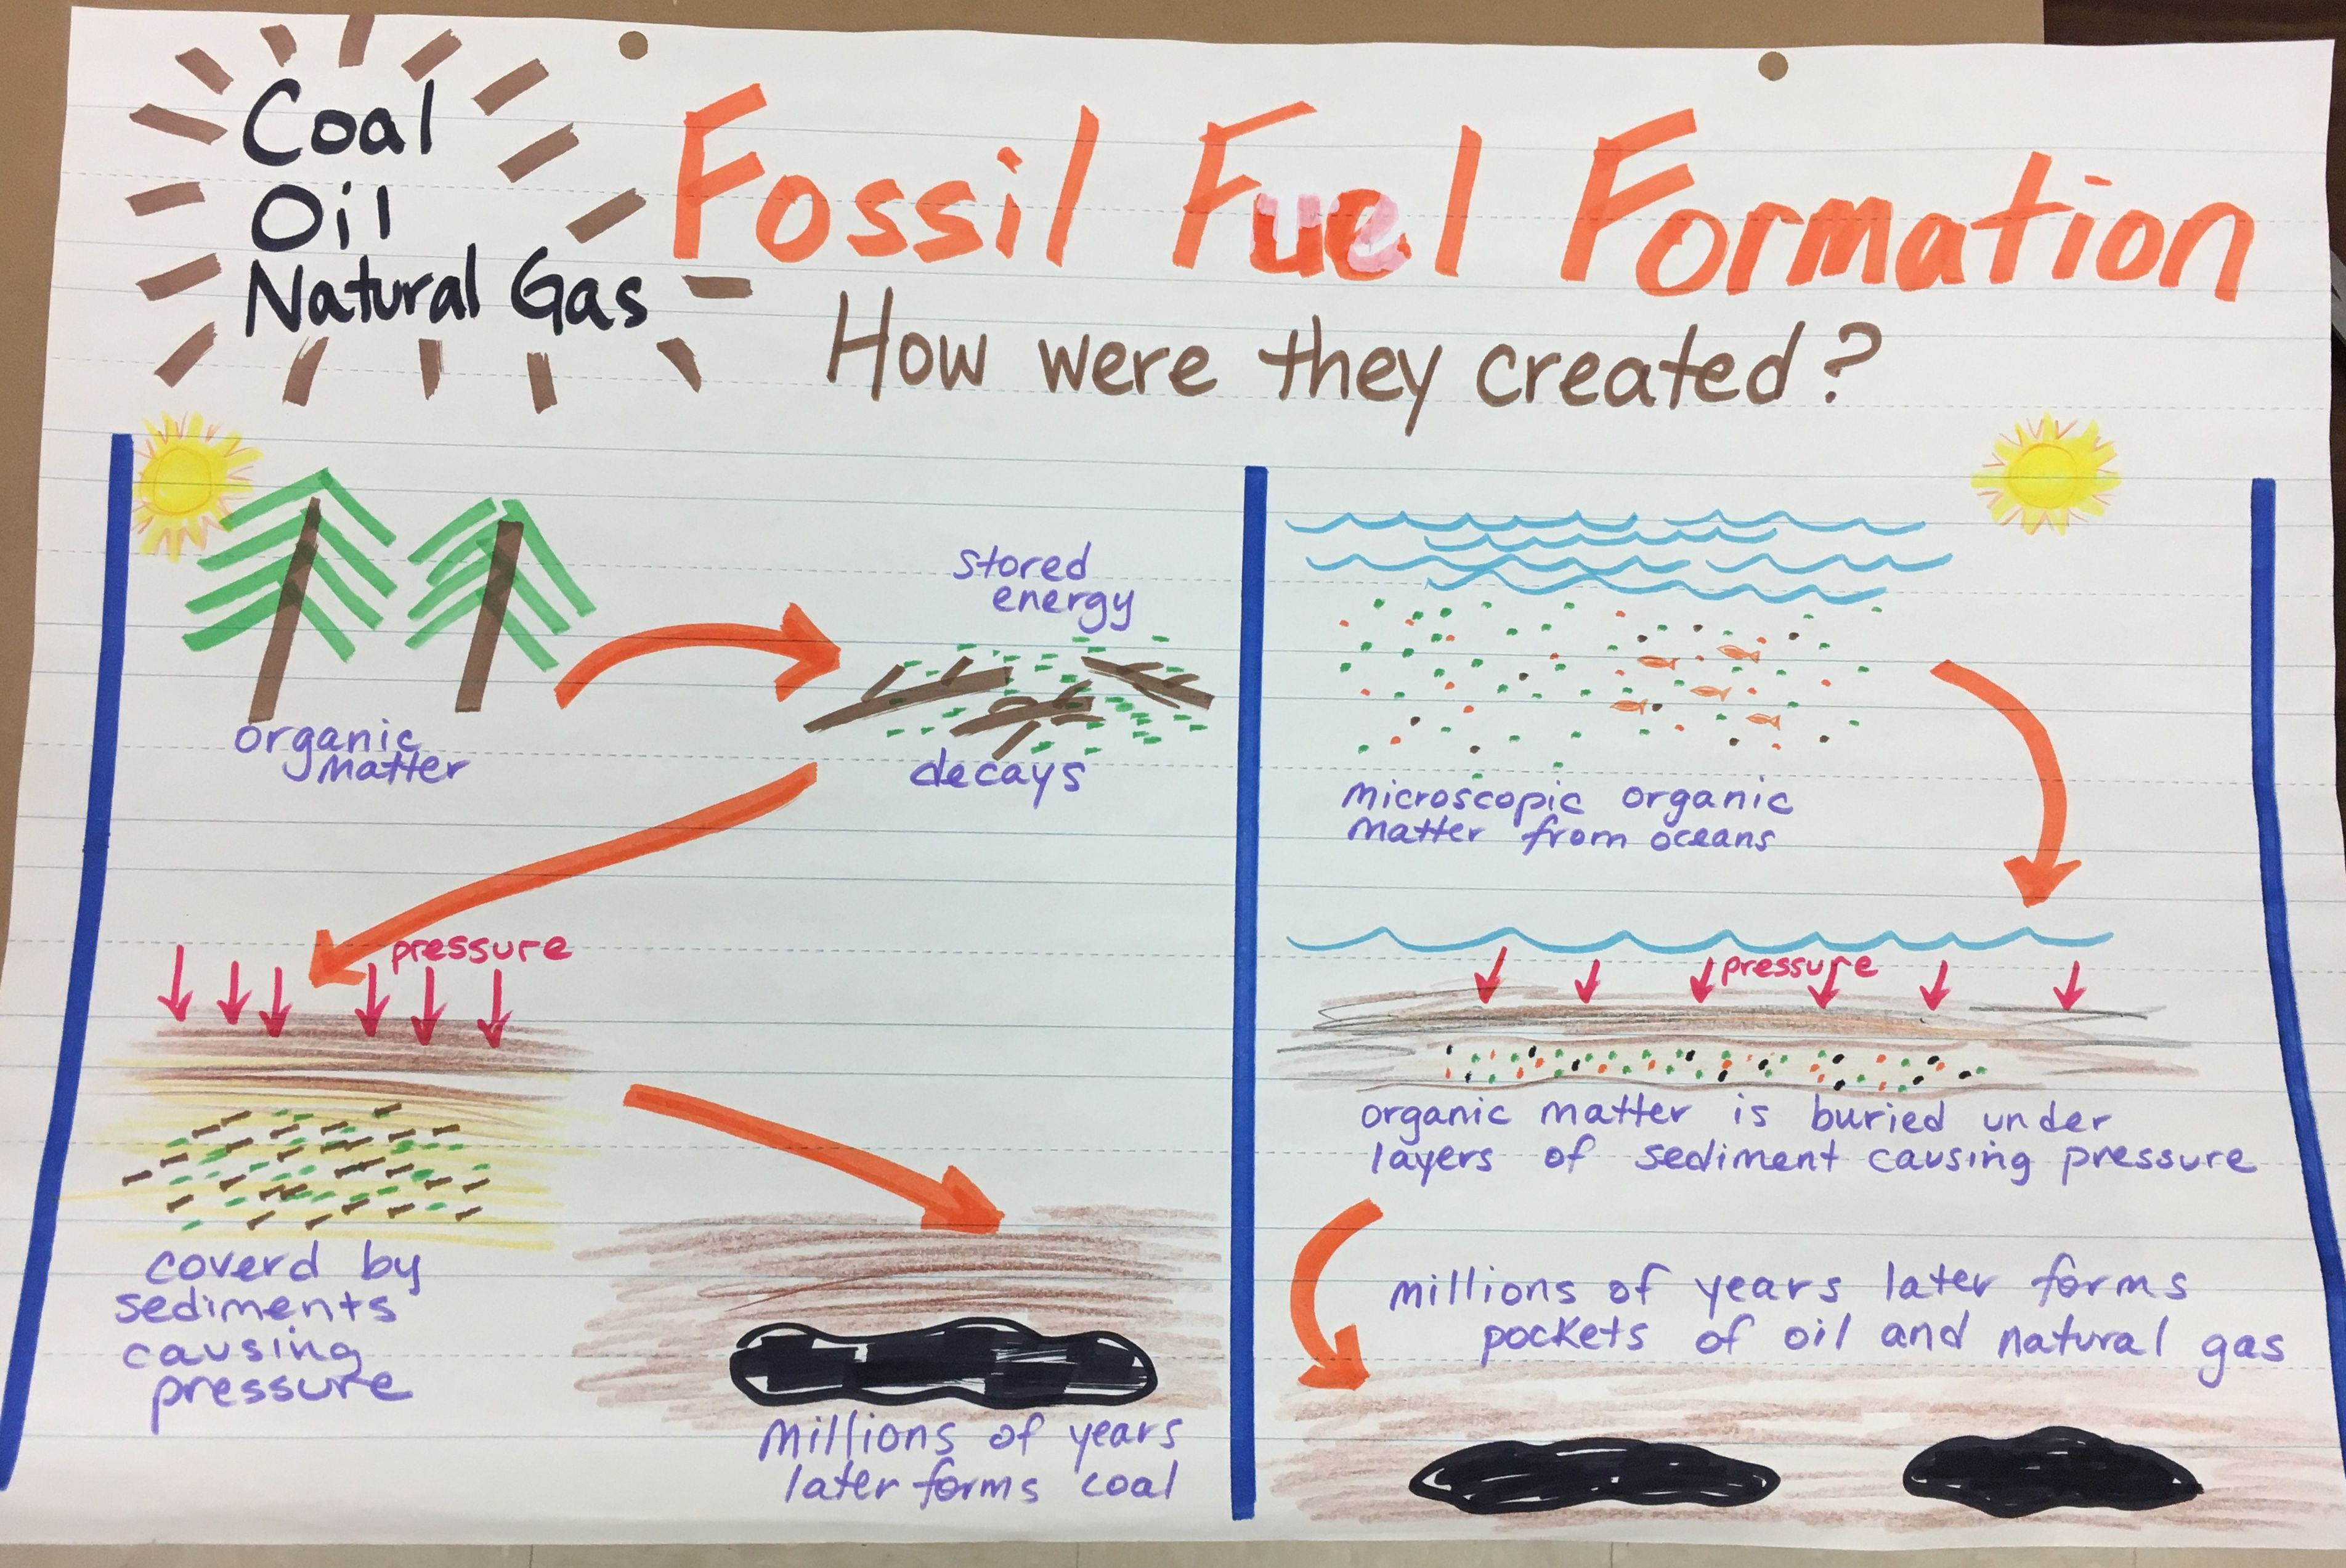 Fossil Fuel Formation Coal Oil Natural Gas 5th Grade Science